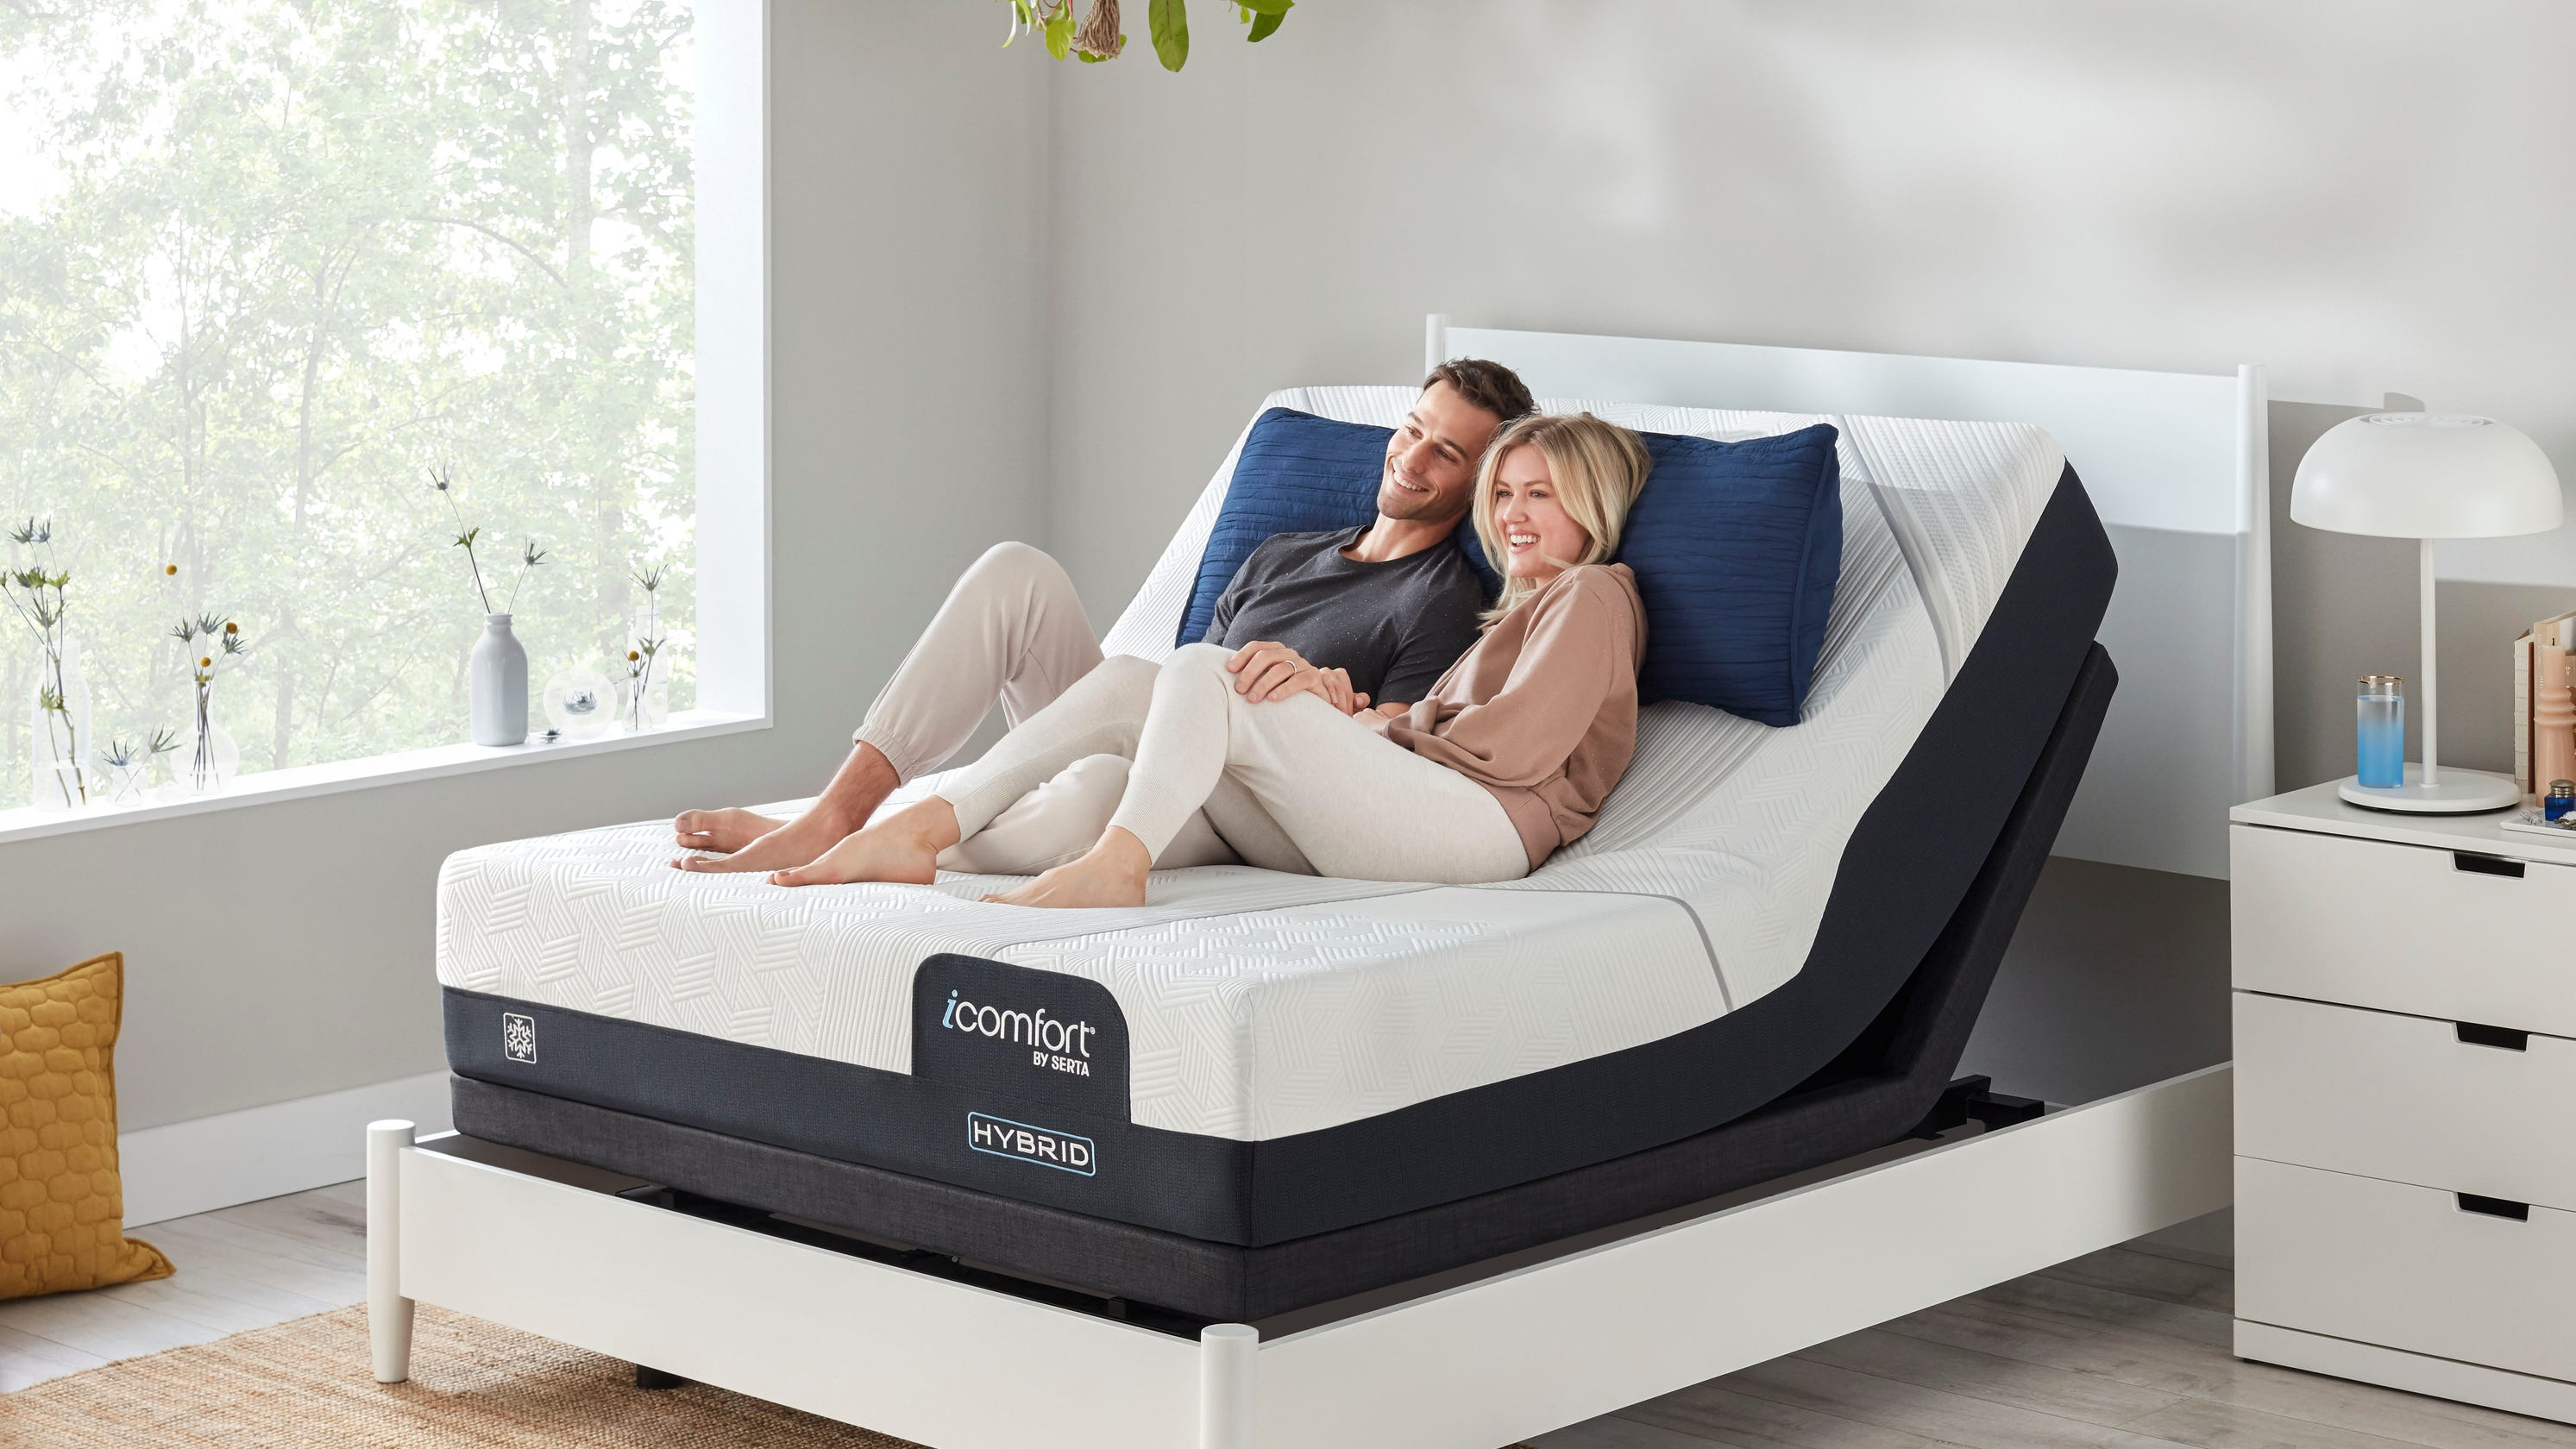 Working from home, in your bed? You're not alone. Mattress sales are soaring during the pandemic.